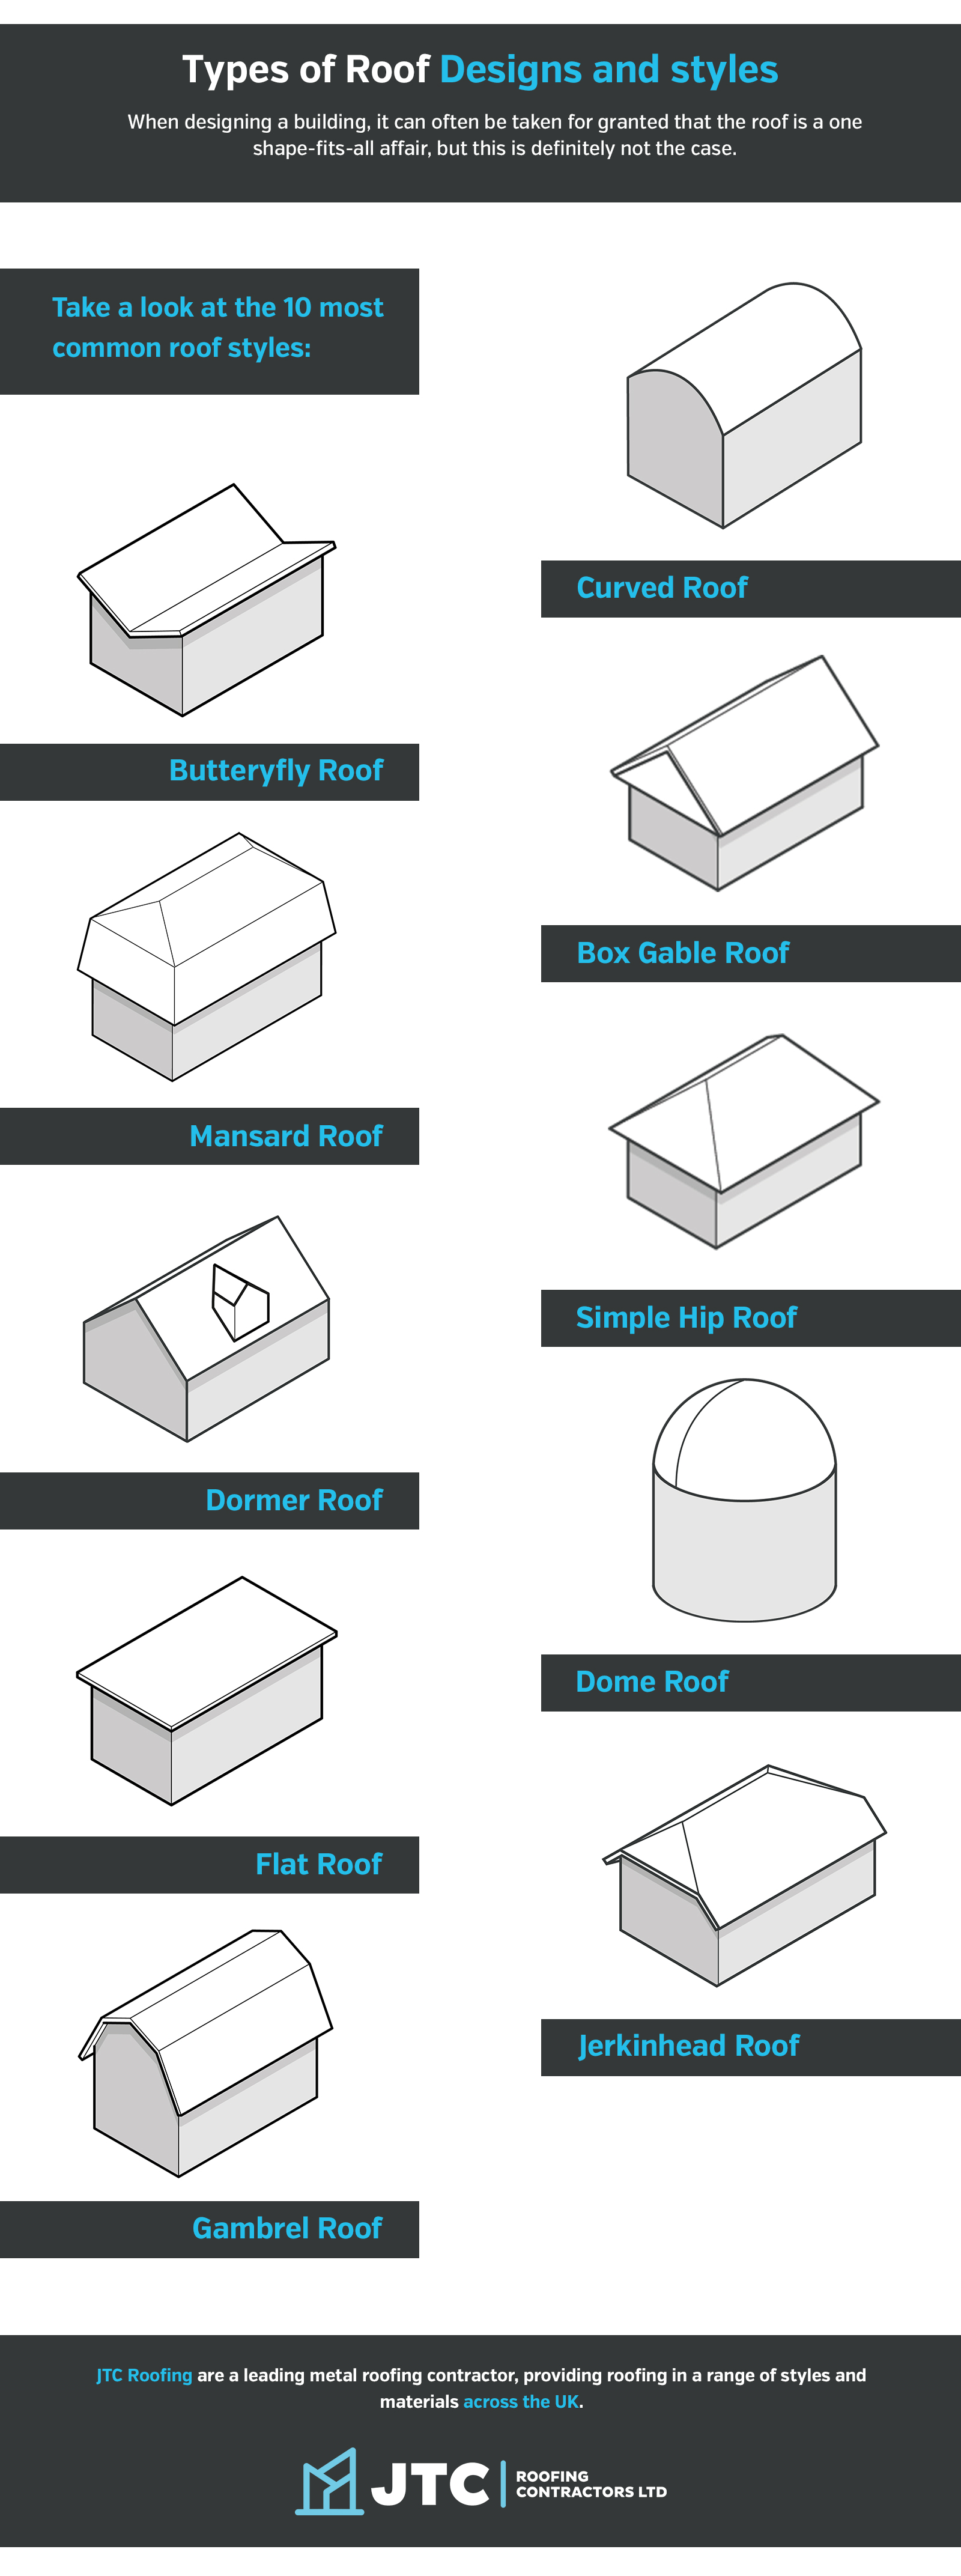 roof designs infographic